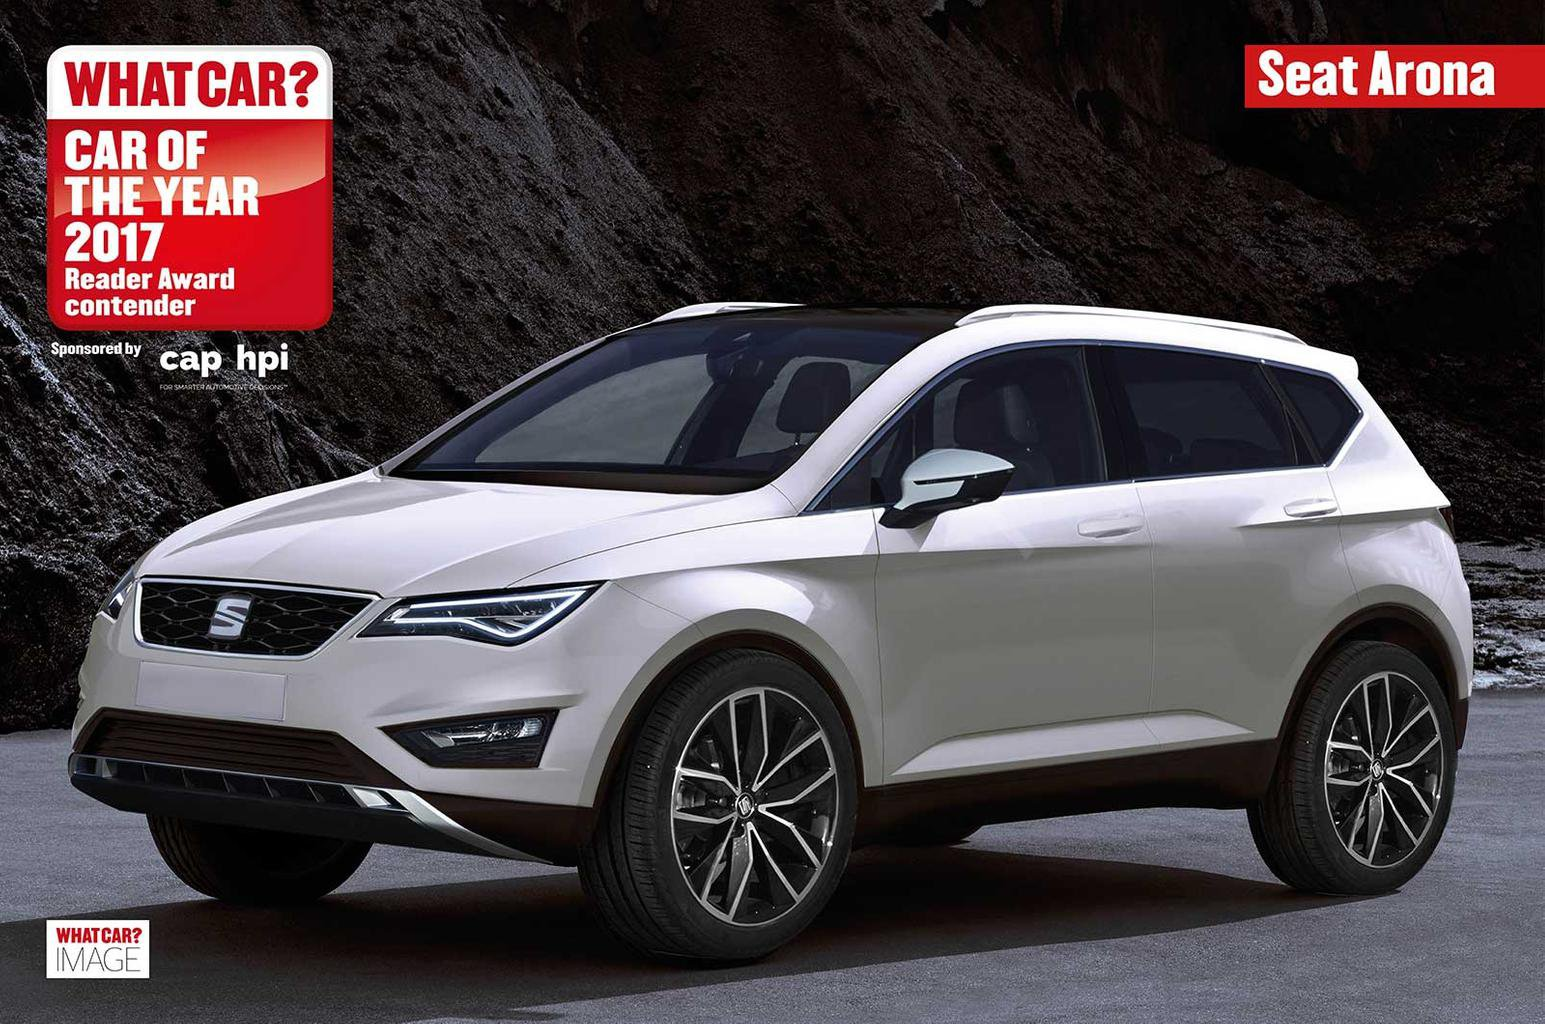 New Seat Arona to rival Nissan Juke in 2017